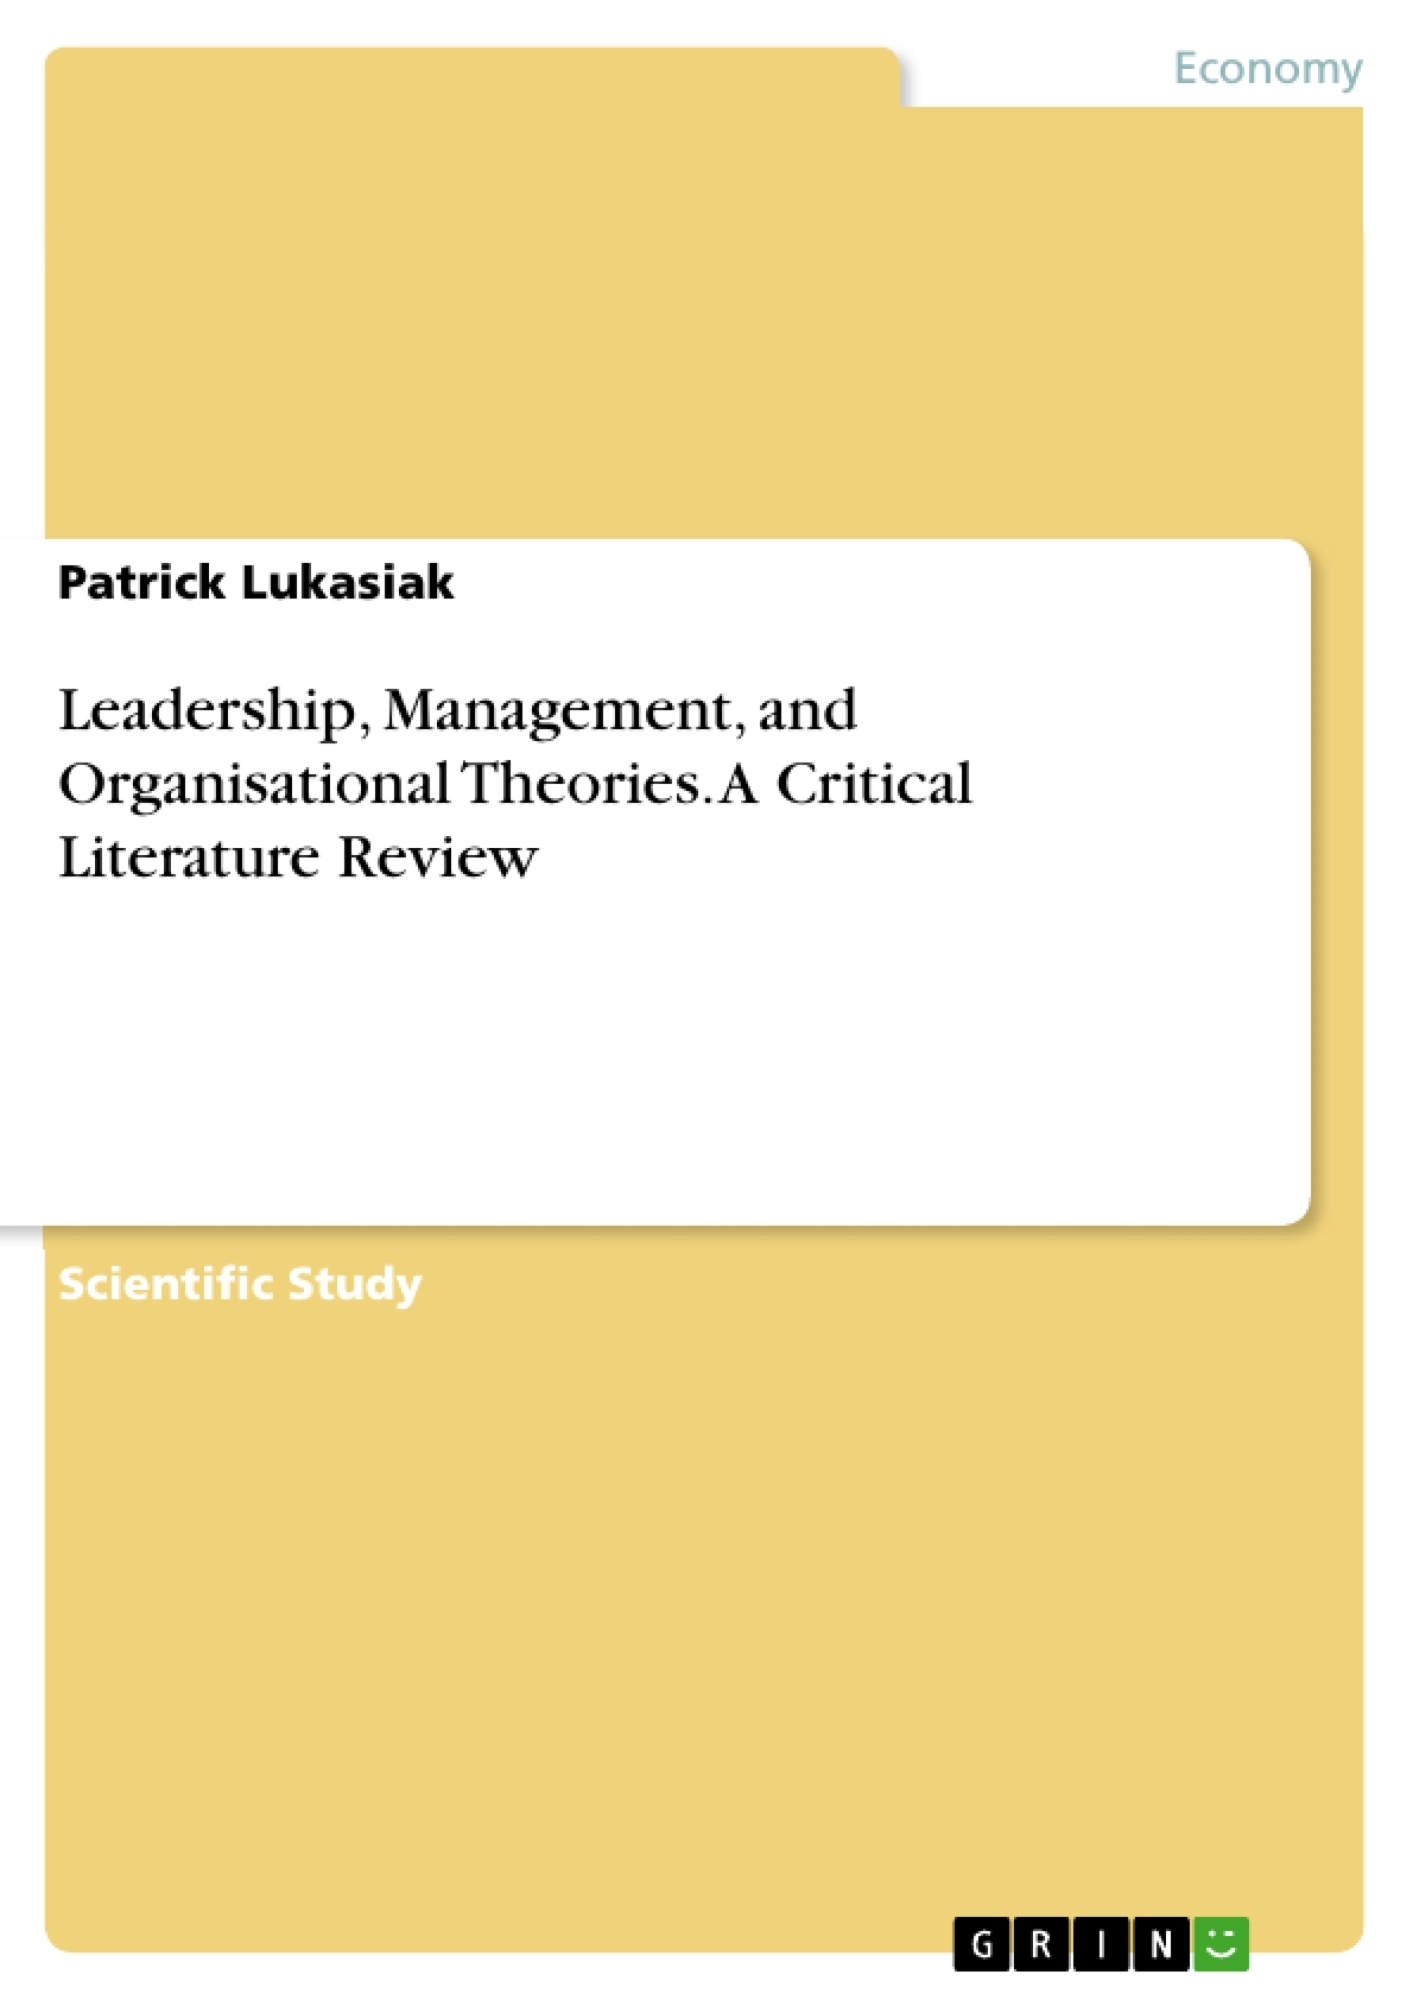 Title: Leadership, Management, and Organisational Theories. A Critical Literature Review